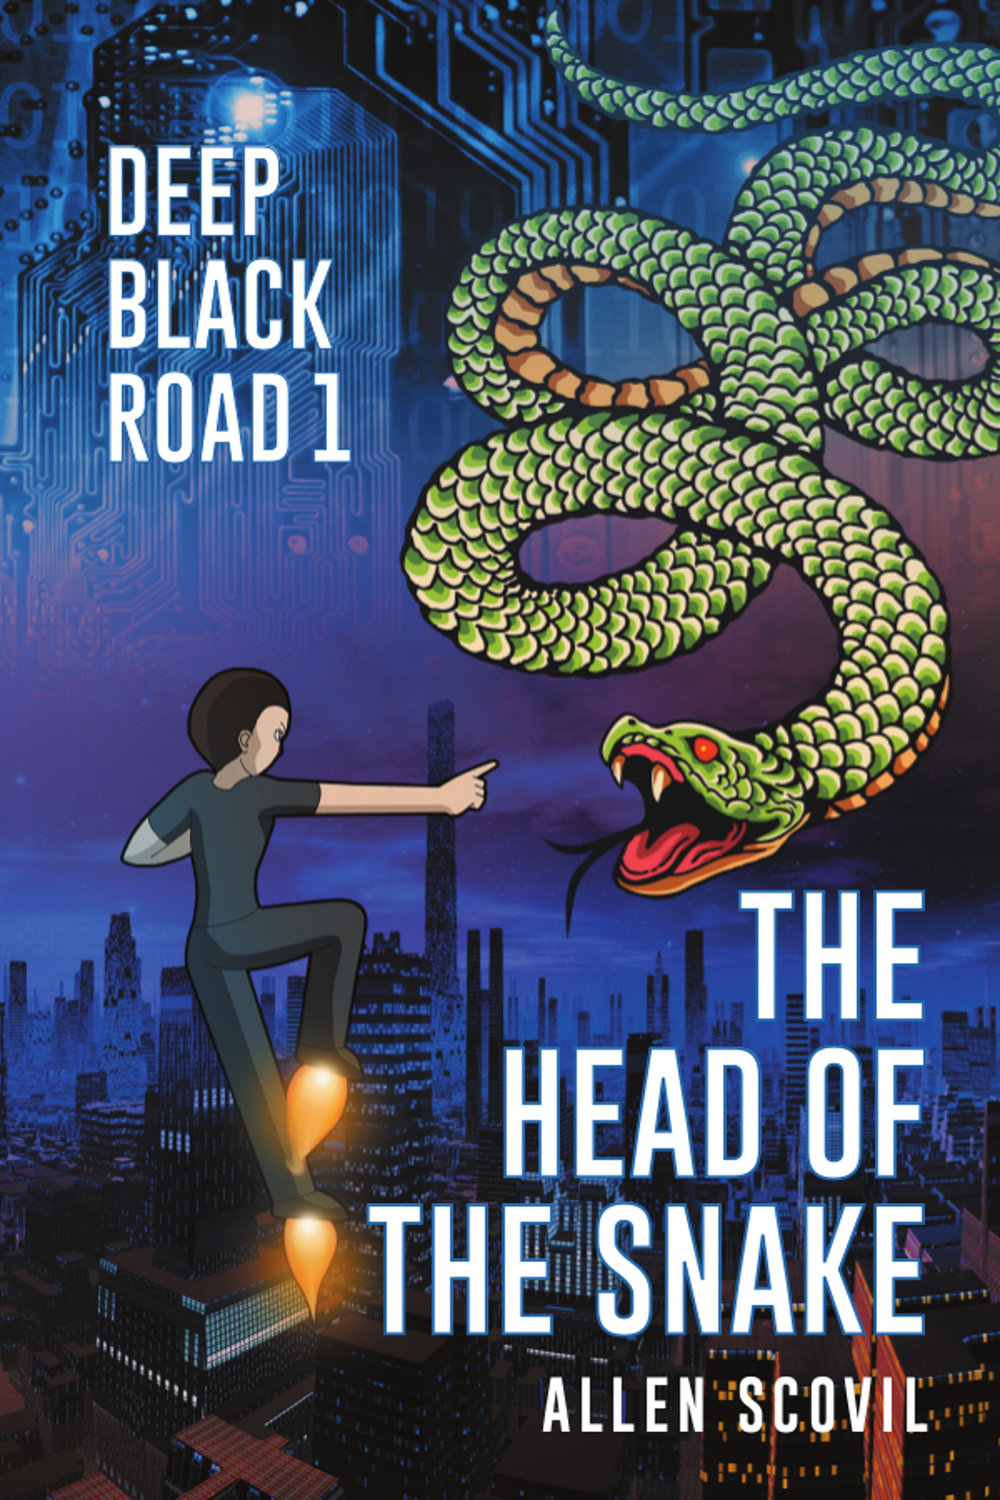 Deep Black Road 1: The Head of the Snake - (Formerly known simply as, Deep Black Road)It all started in 2079 with the three of them.First there was the general, who wasn't about to let something as trivial as a fatal illness interfere with his plan to take over the Federation of North America.Then there was the boy, who loved robotics and games, but was crushed by a robot run amok.And finally, the girl: being groomed by her wealthy and influential father for business success and political power, she was cut down in a freak car accident.But they didn't die.The general, getting his wish to be made robotic, toppled the provincial government of Foredan on his way to taking on the rest of the Federation.The boy's father, clinging to his last emotional connection with his late wife, put his son's soul into a memorial robot, which got tangled up in the general's machinations, and fell into the hands of the renegade Followers of the Anointed One.The girl, roboticized at her influential and wealthy father's expense, threw her lot in with the general's scheme in opposition to her father, intending to ride the general's coattails to the power she craved.None of them counted on the Prophet, hiding like a deadly snake in the grass, waiting for the right moment to strike; and when he did, they  found themselves together, on the run from the New Order.Can the boy, having been granted a 'great and terrible' destiny when he hovered between death and life, be able to find his way to it … on the Deep Black Road?